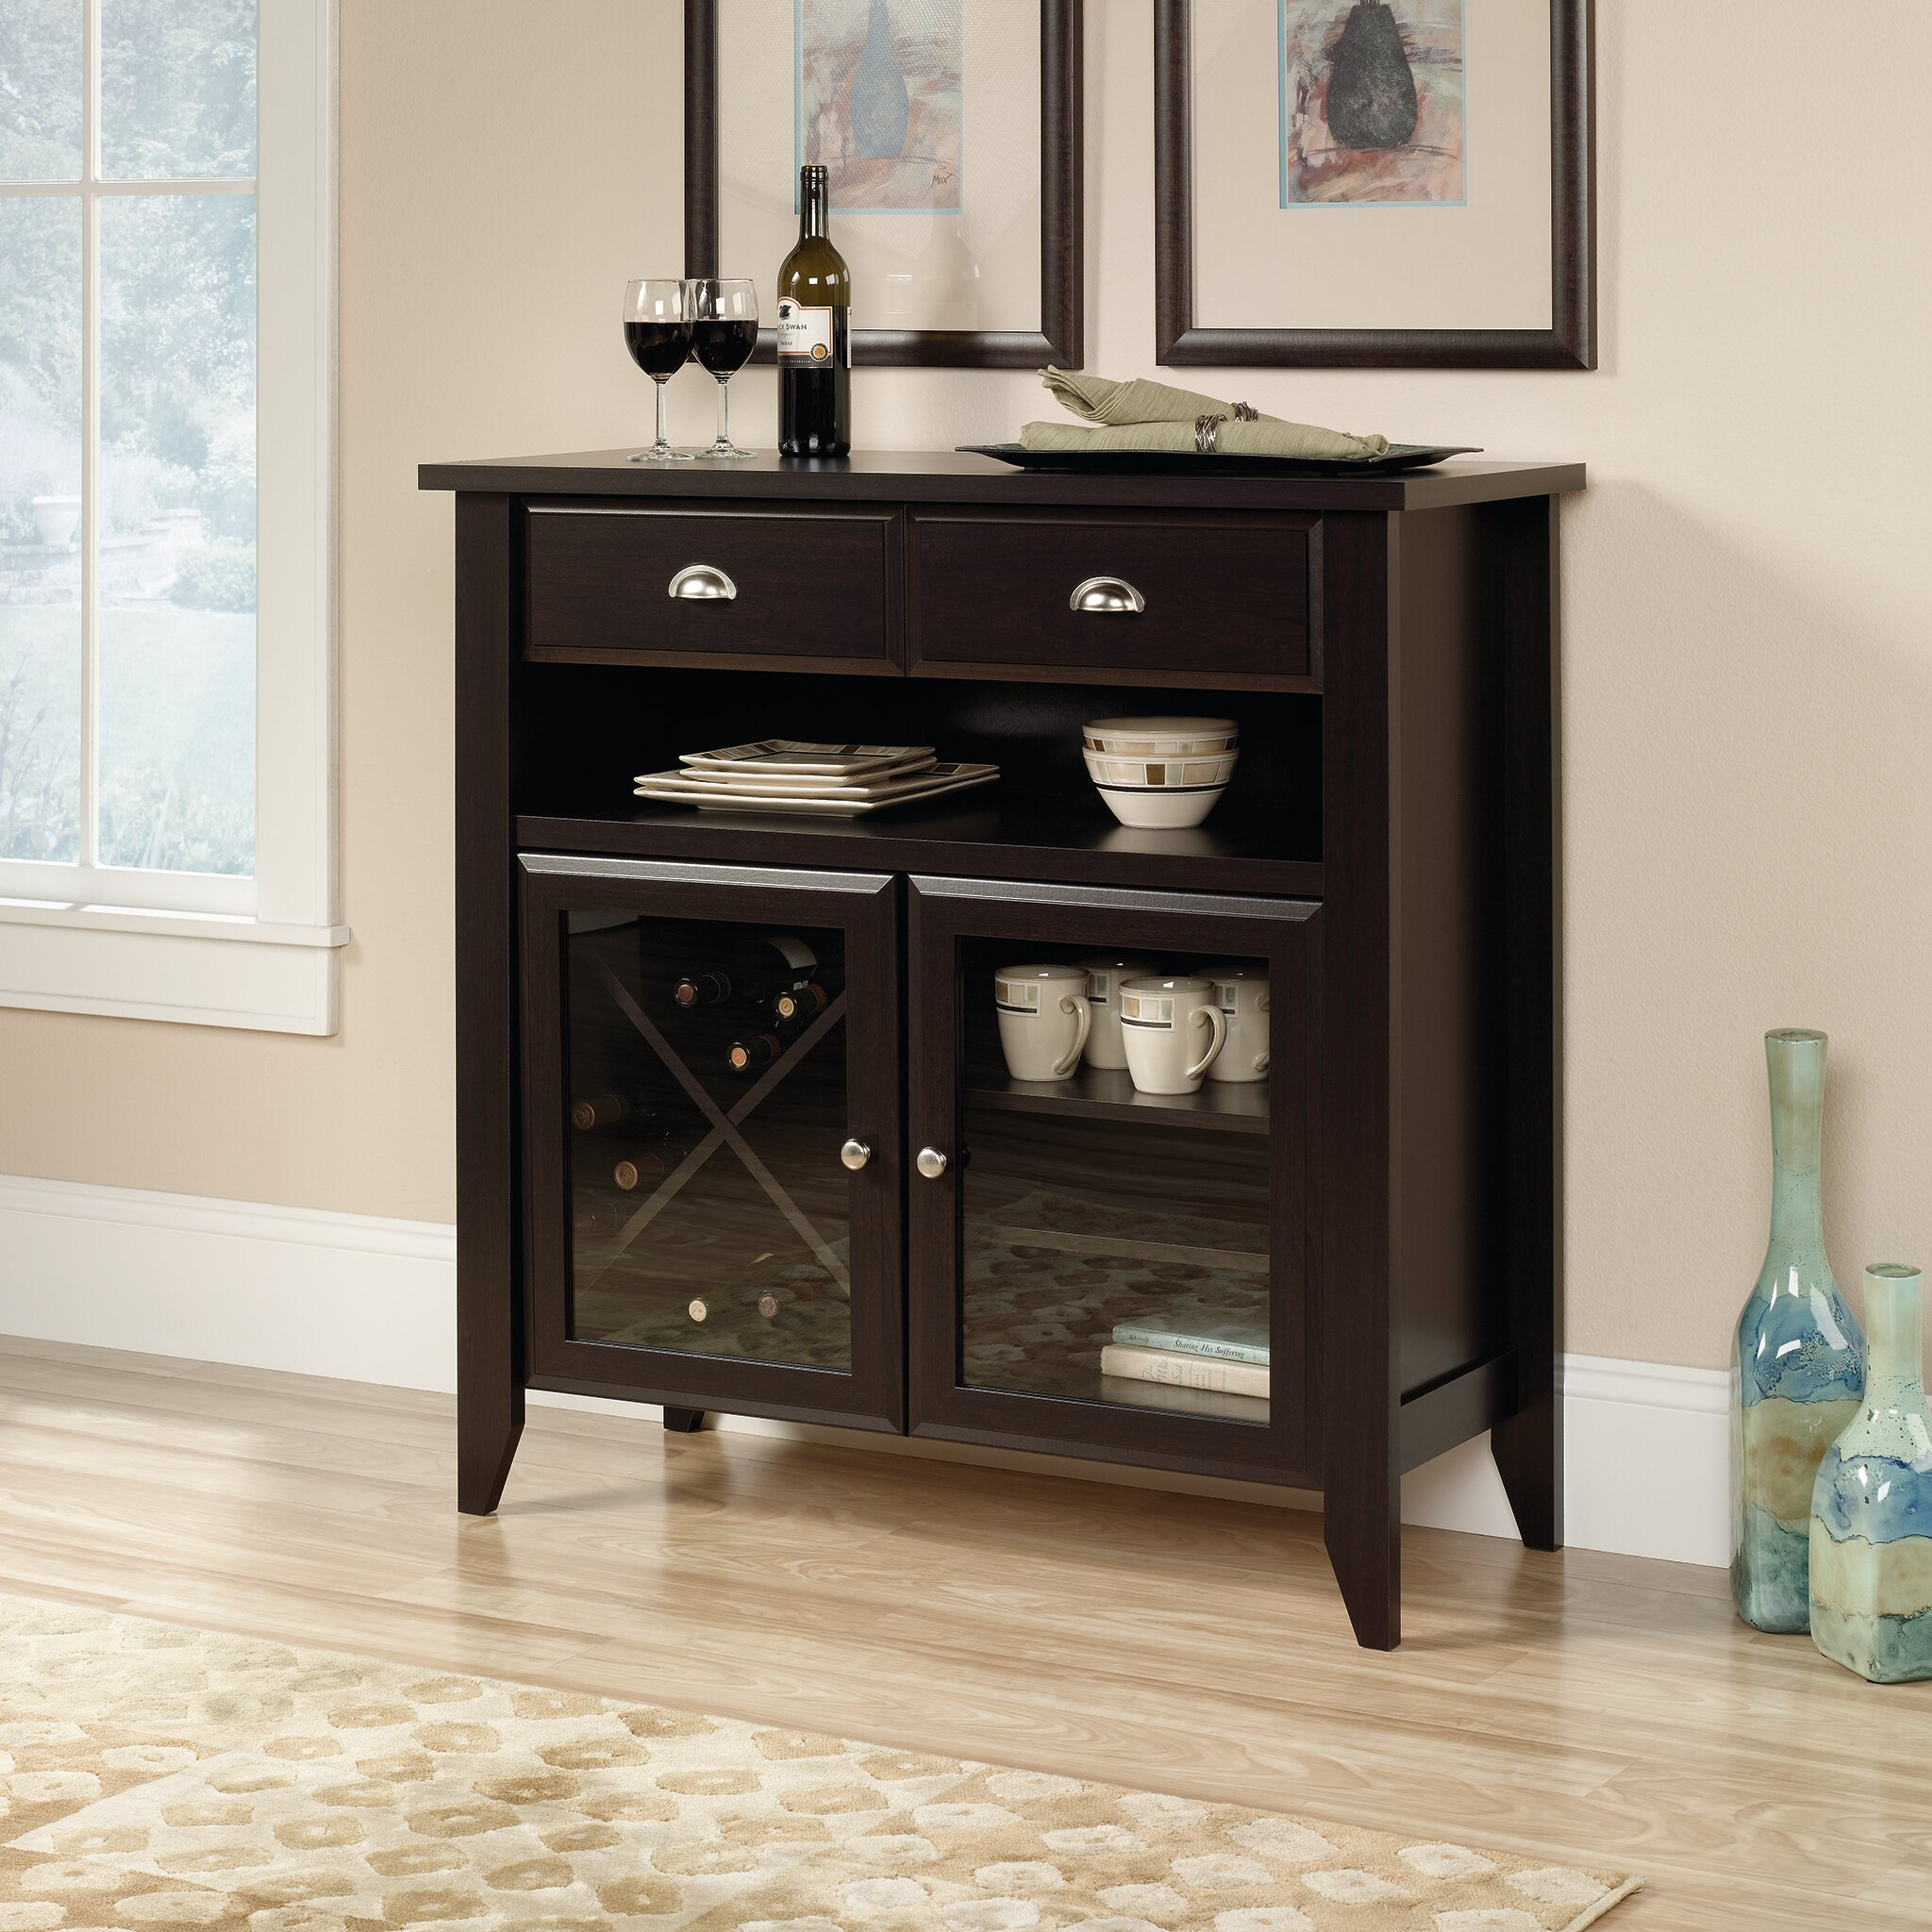 Buffet table furniture ikea - Revere Server